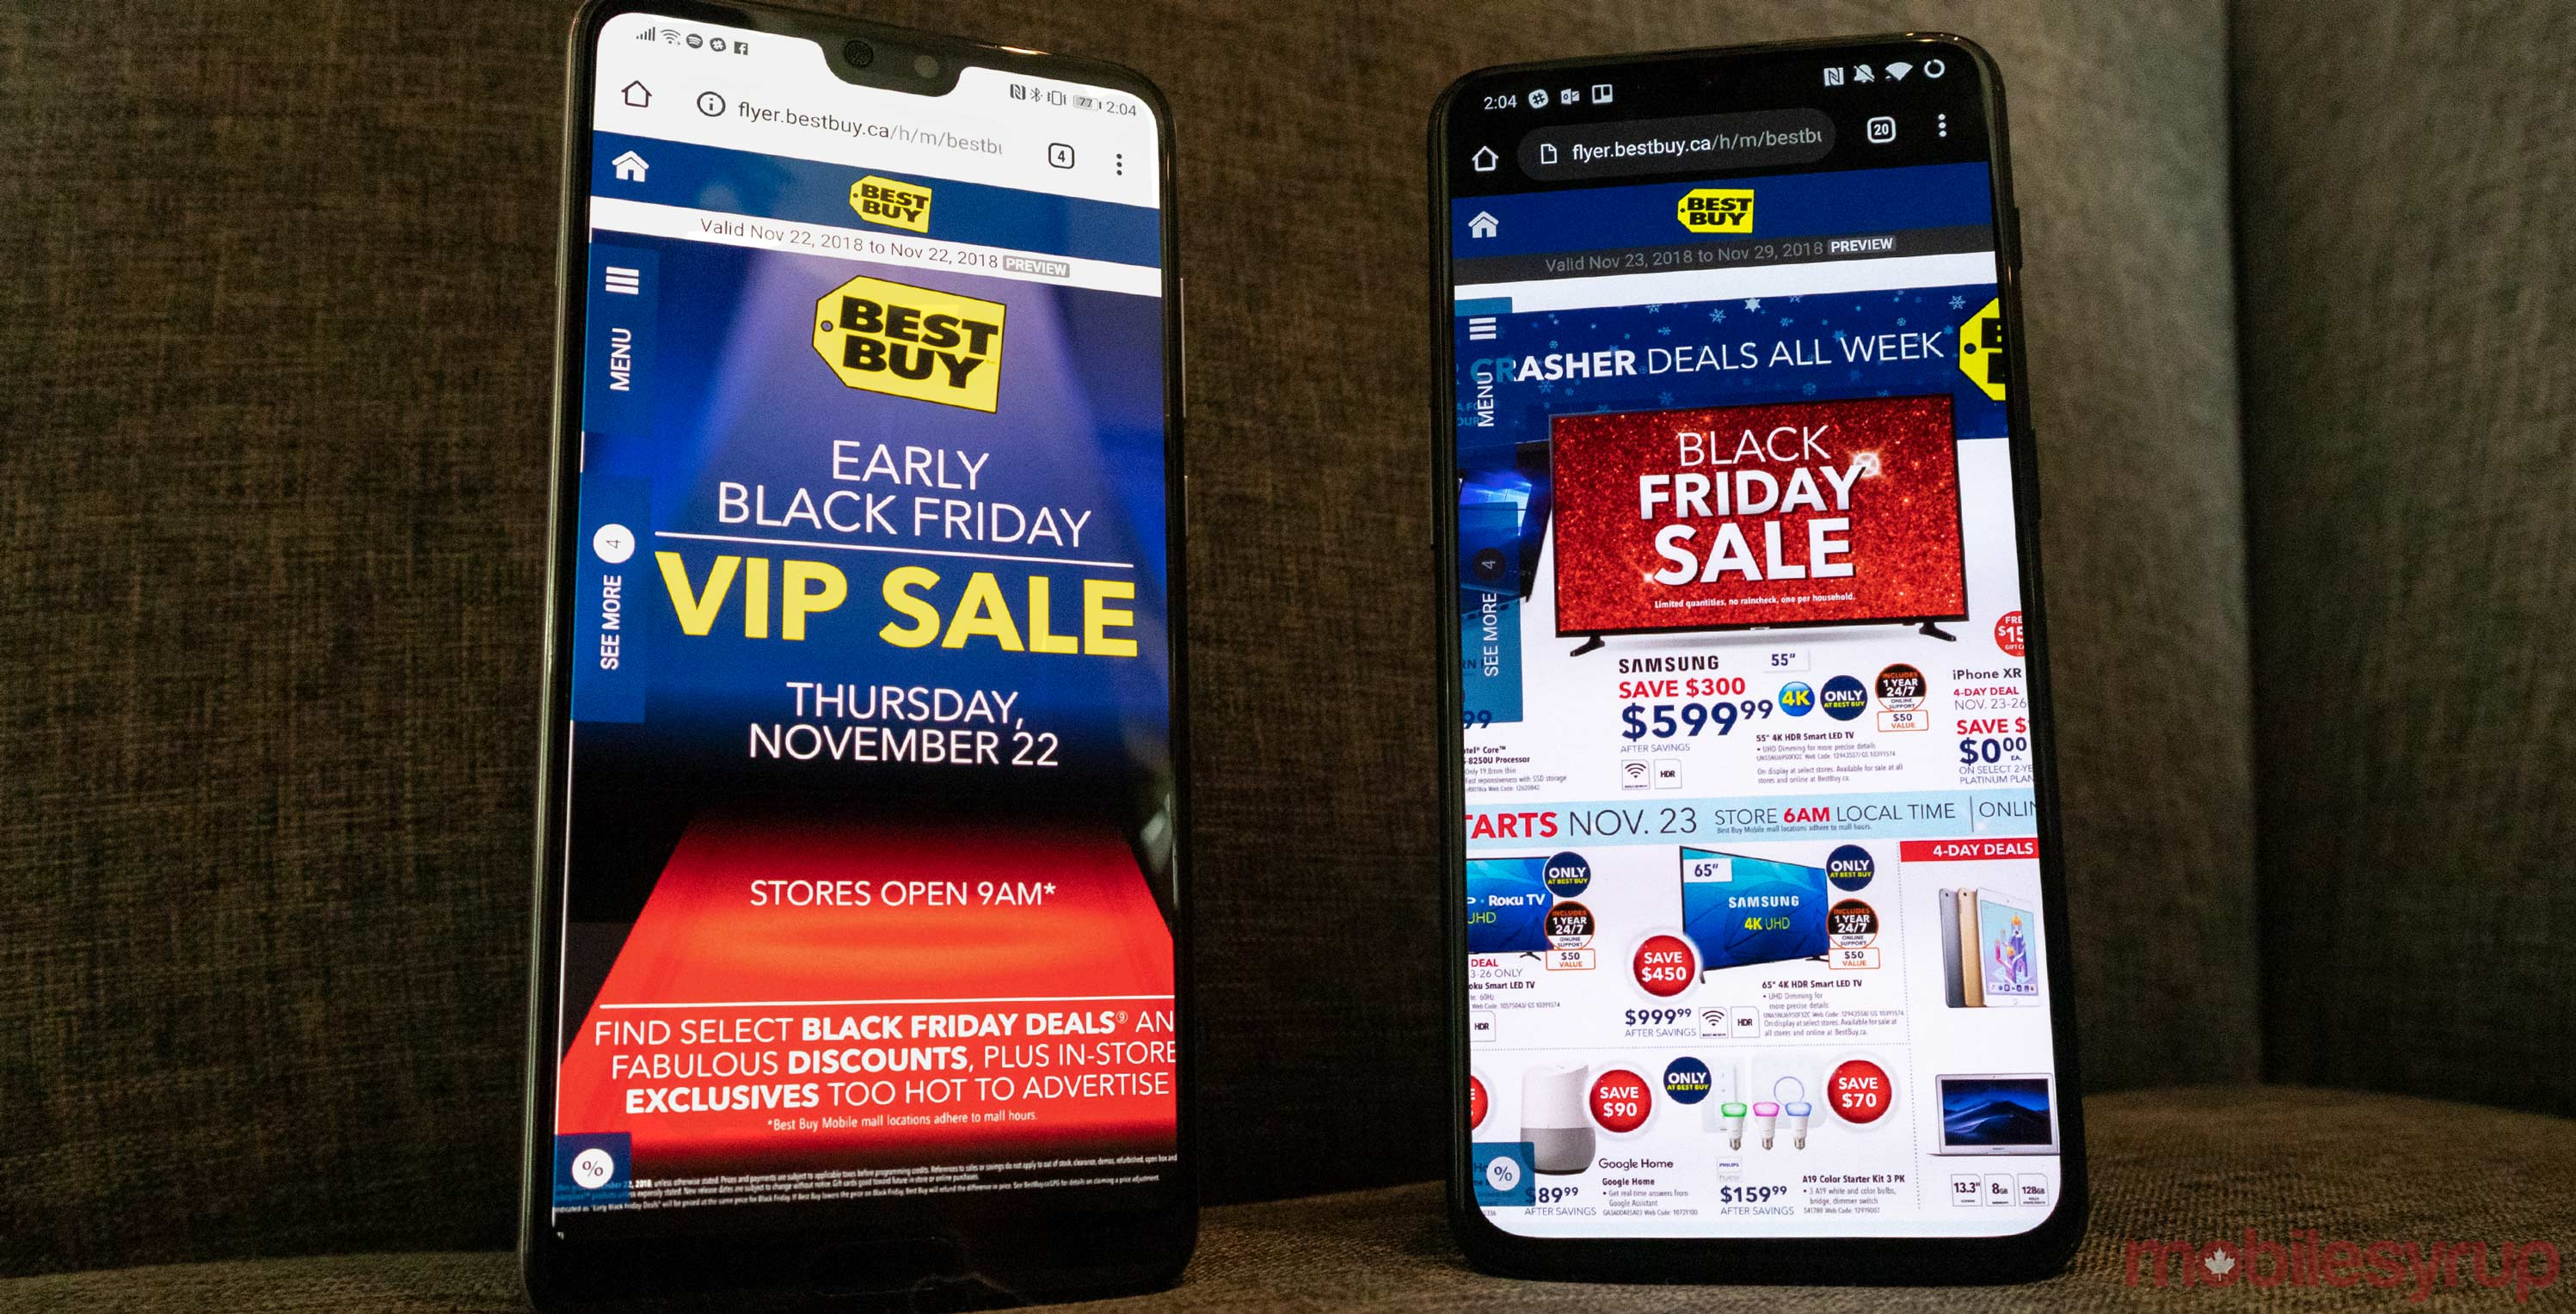 Best Buy Canada Adds Vip Sale To Existing Black Friday Tech Deals